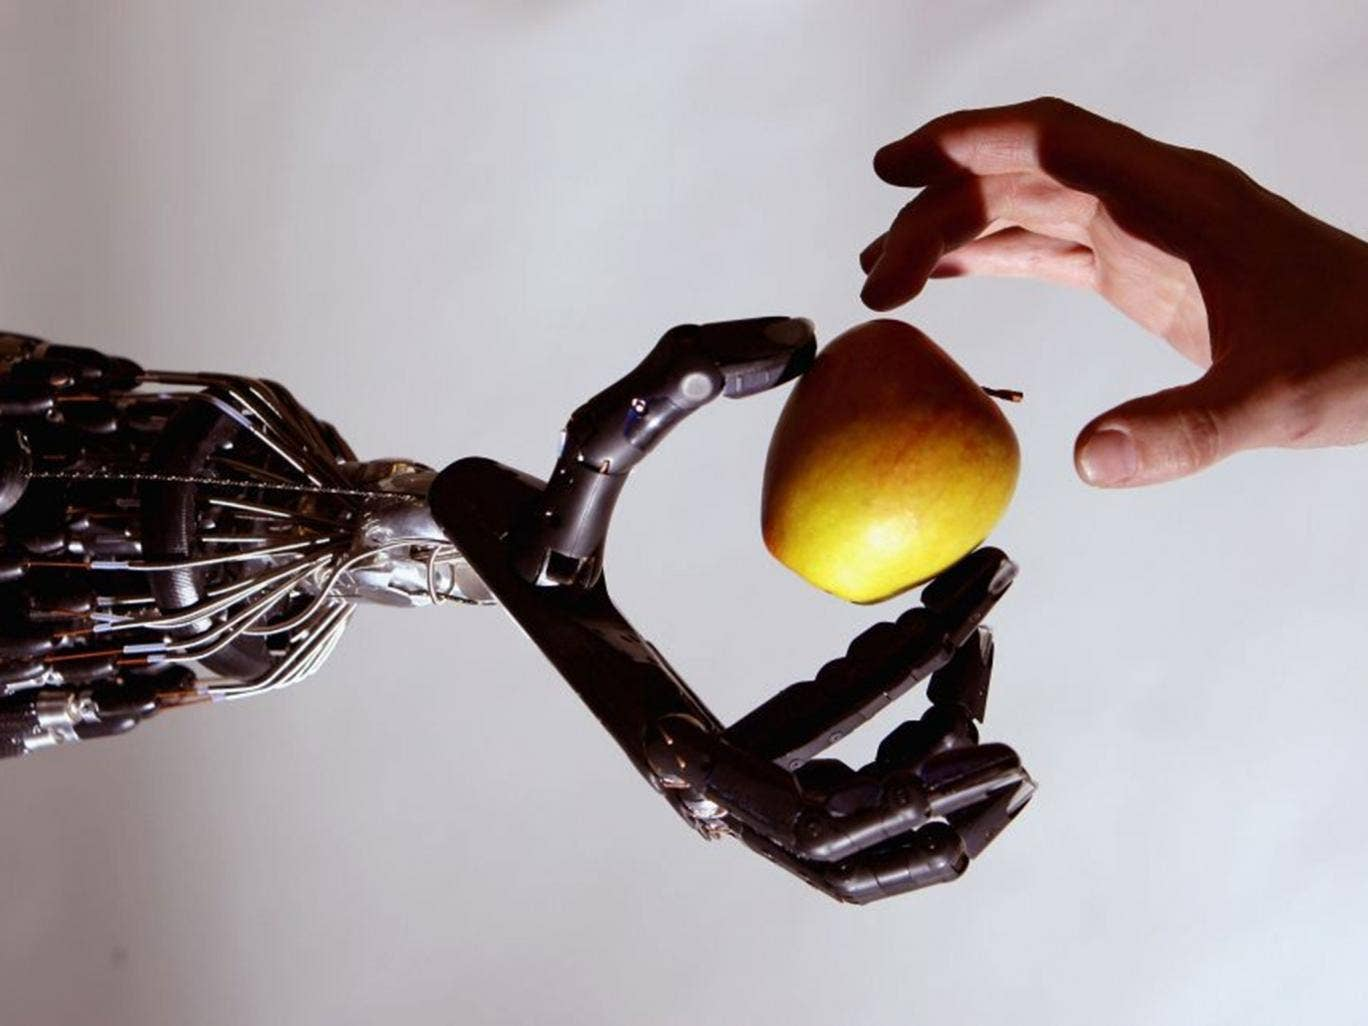 The rise of robots will eventually make human brain power all but redundant in the workplace